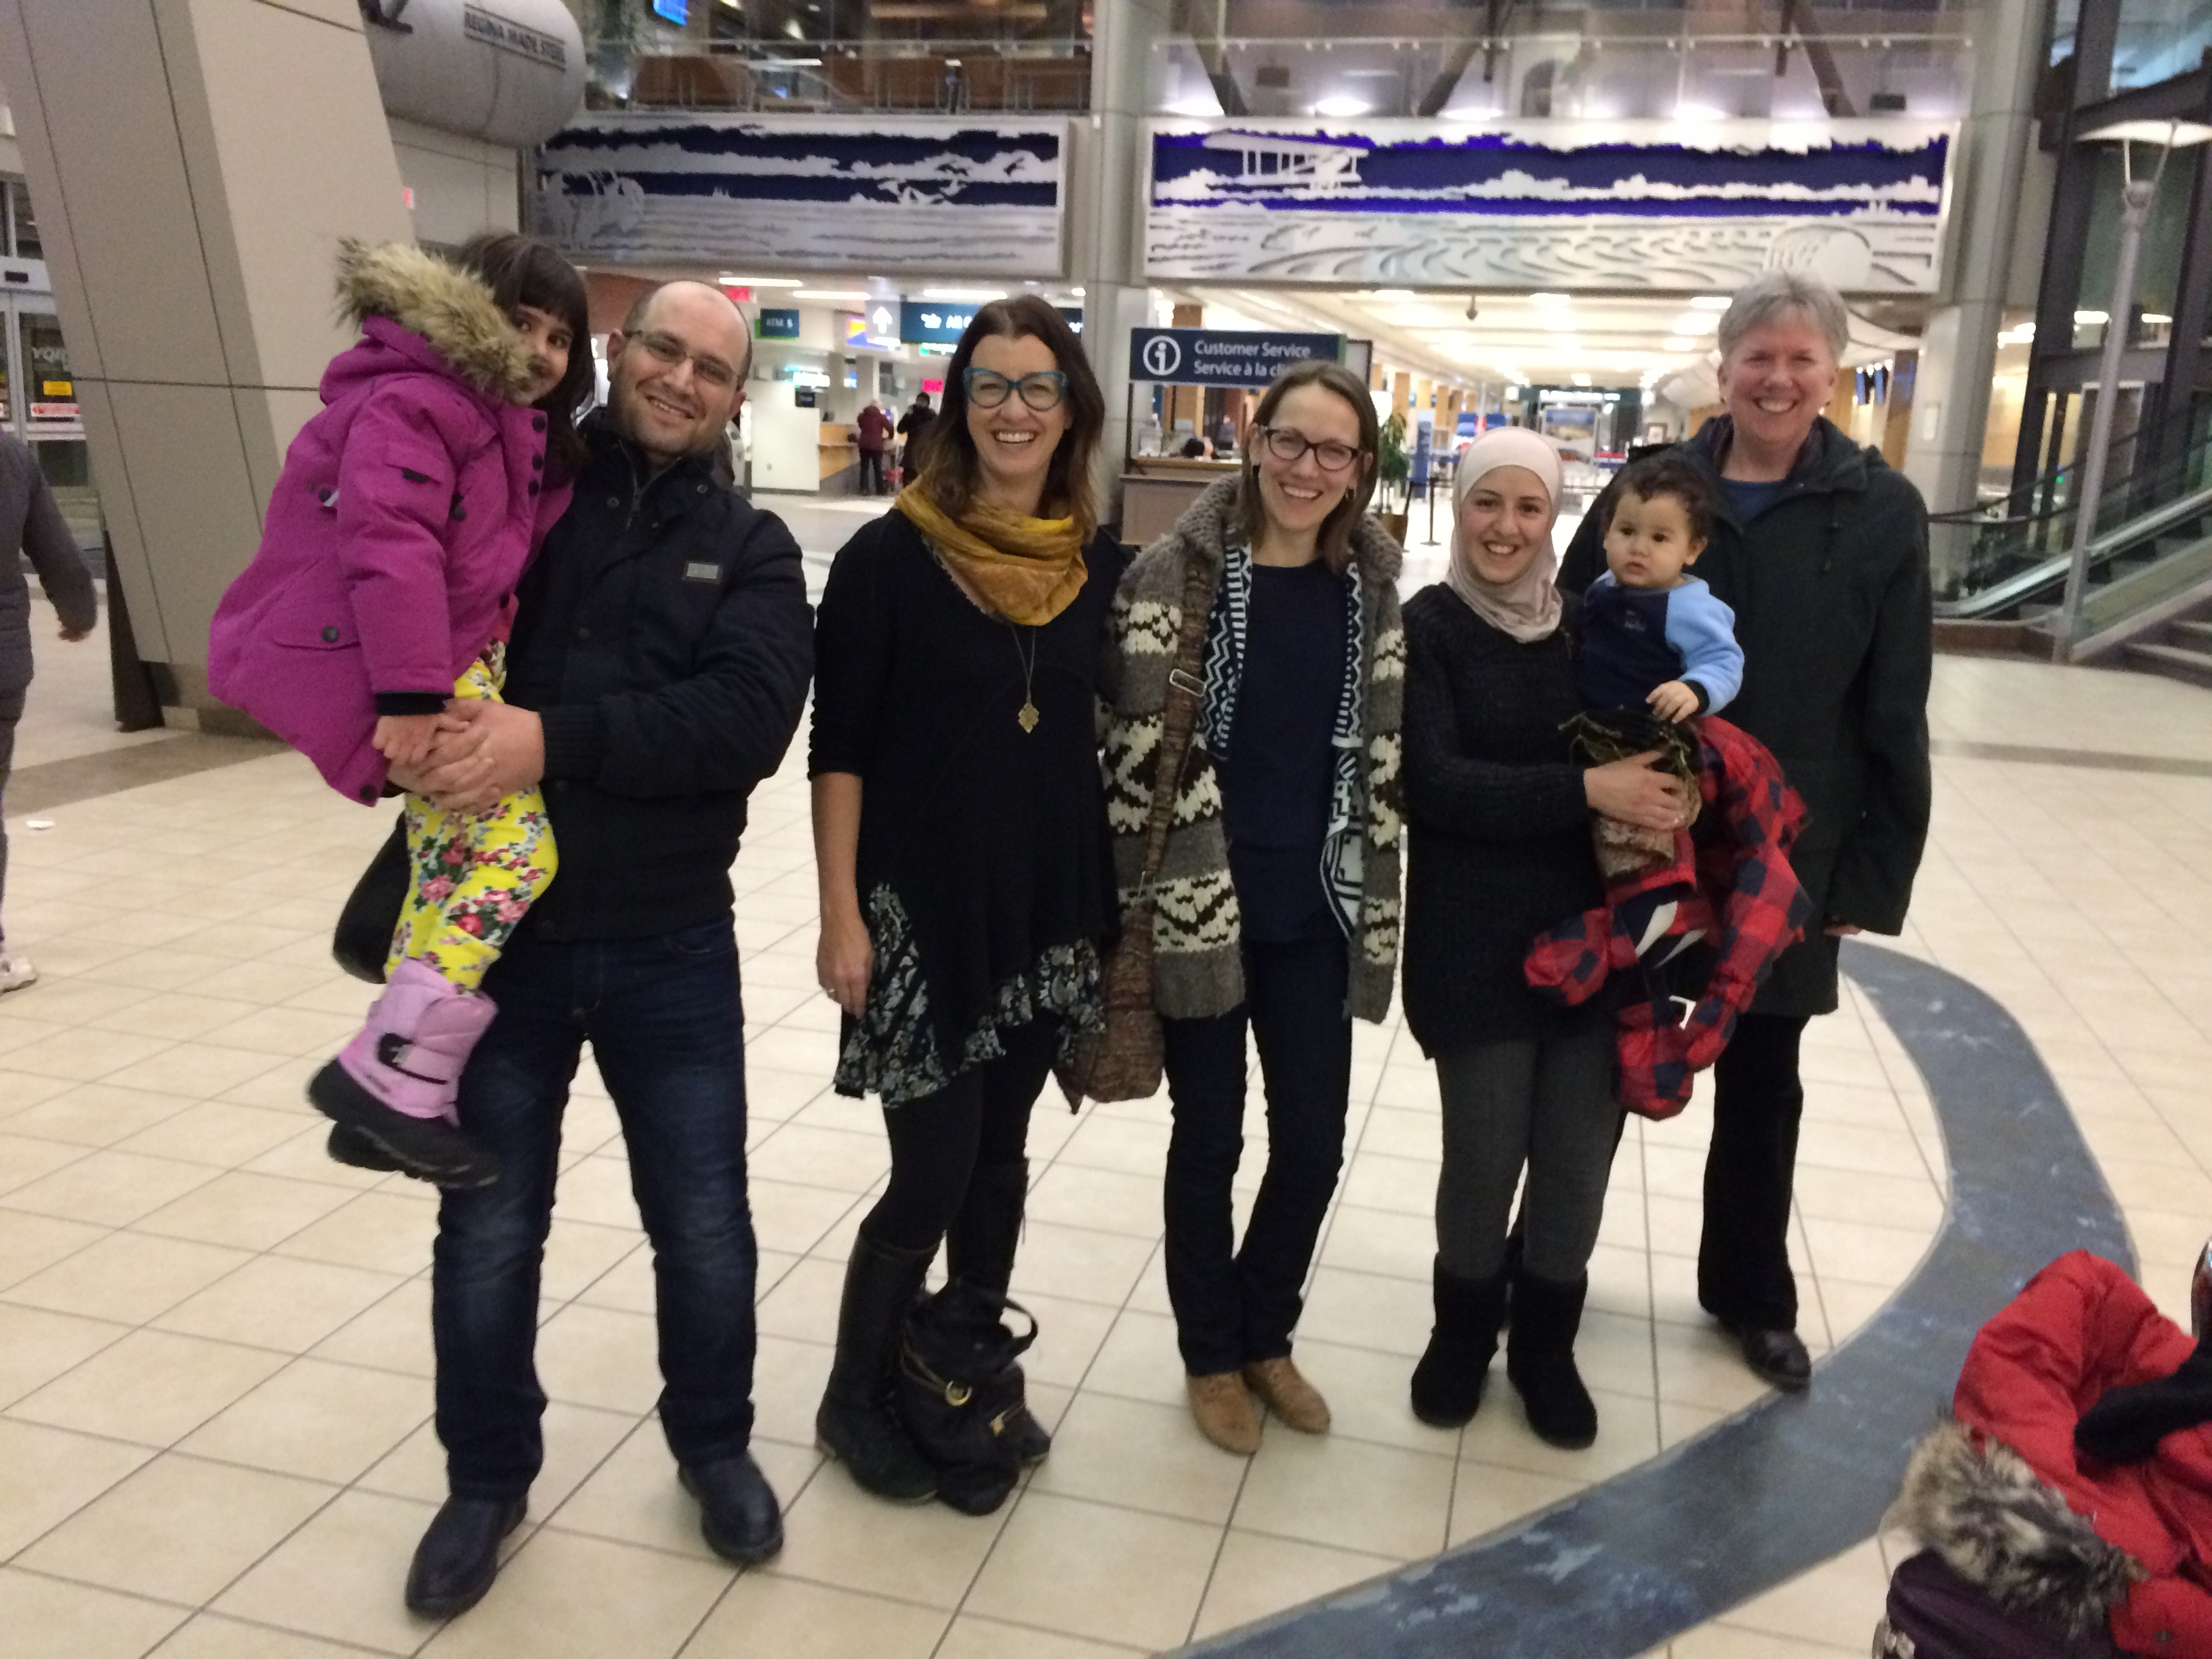 The Etmeh family has arrived!